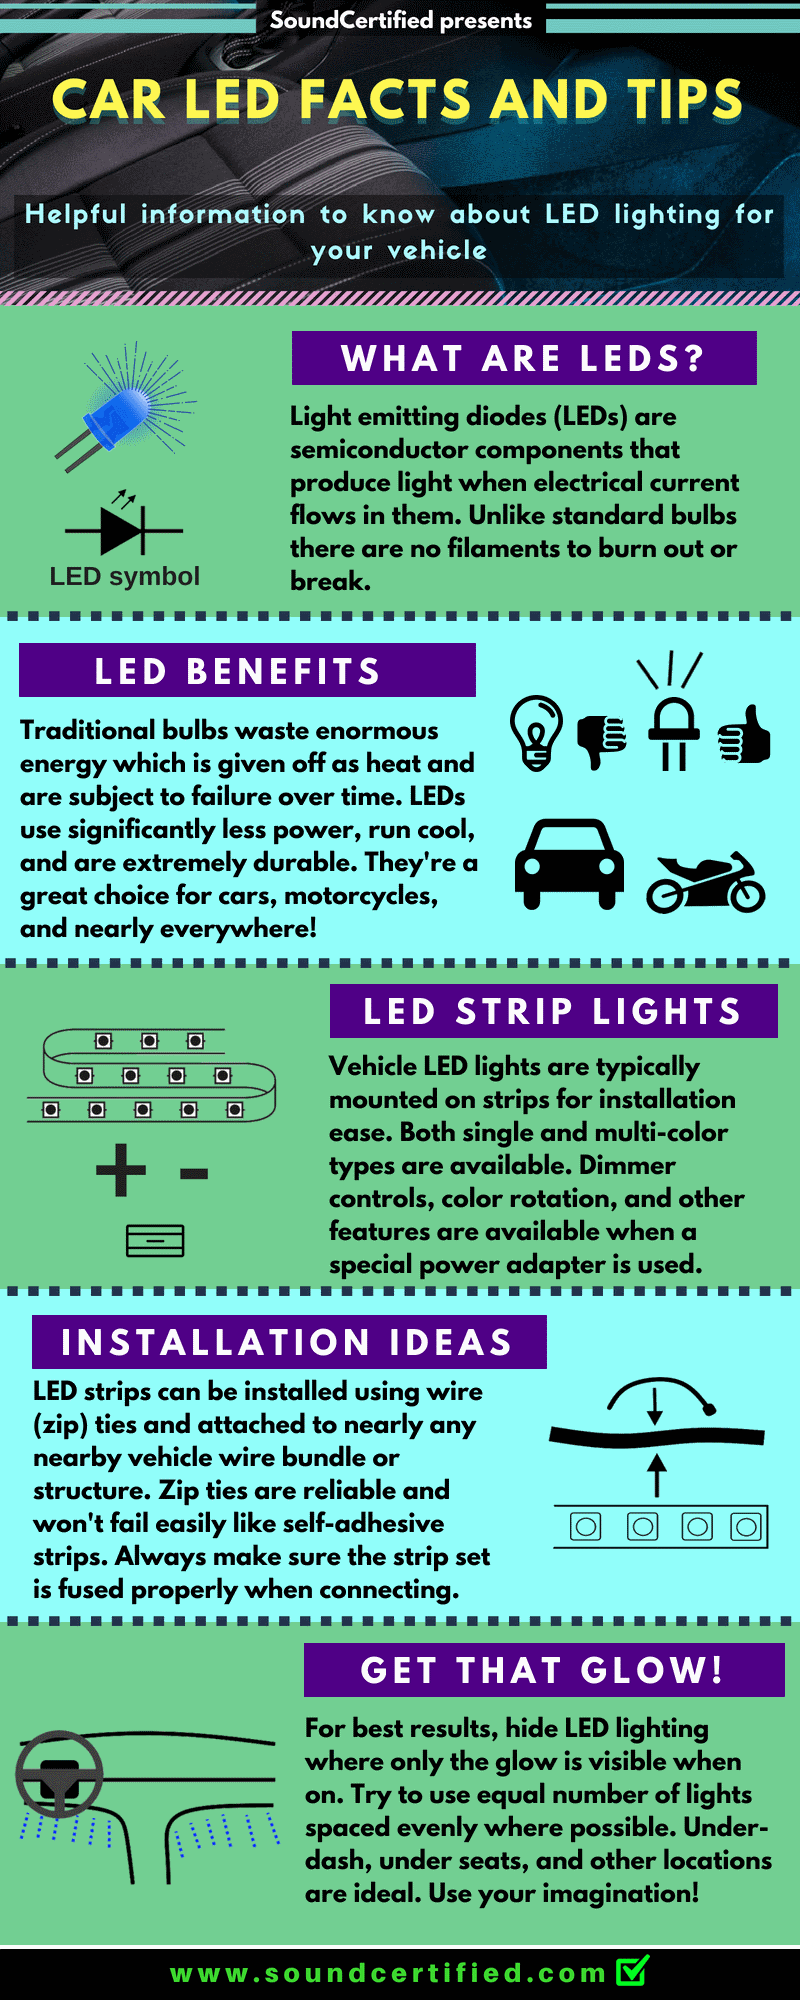 How To Install LED Light Strips In A Car